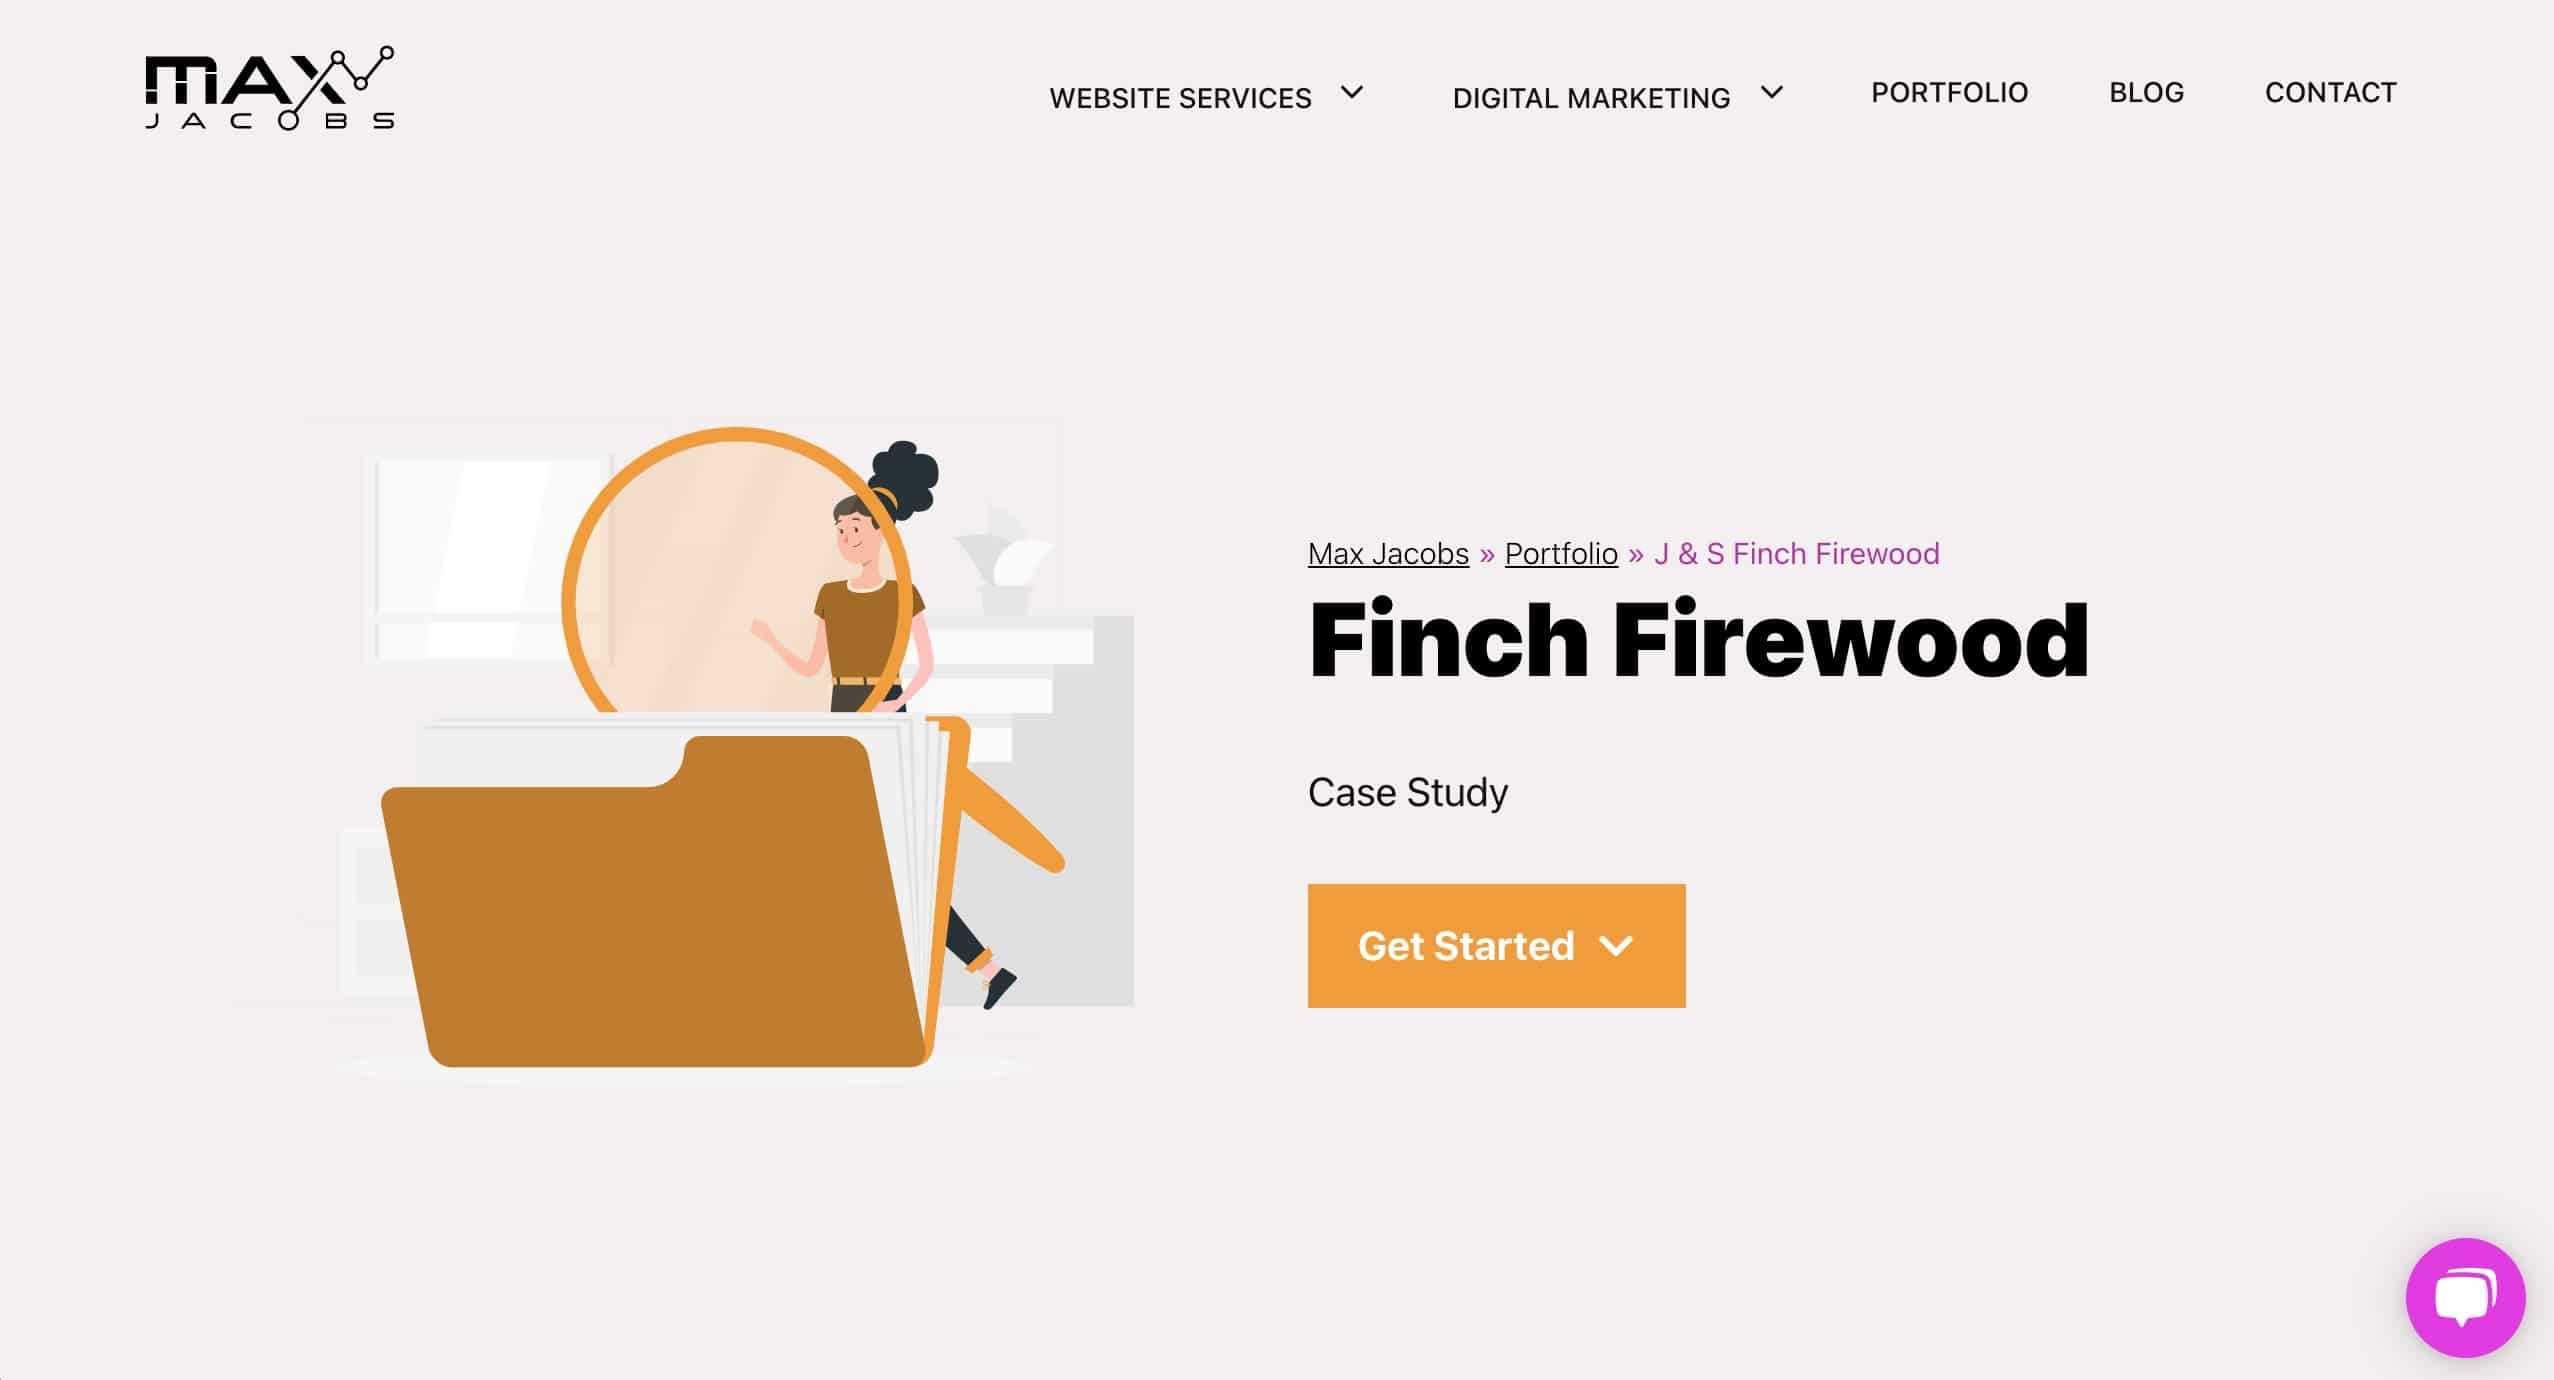 Finch Firewood Case Study - Max Jacobs